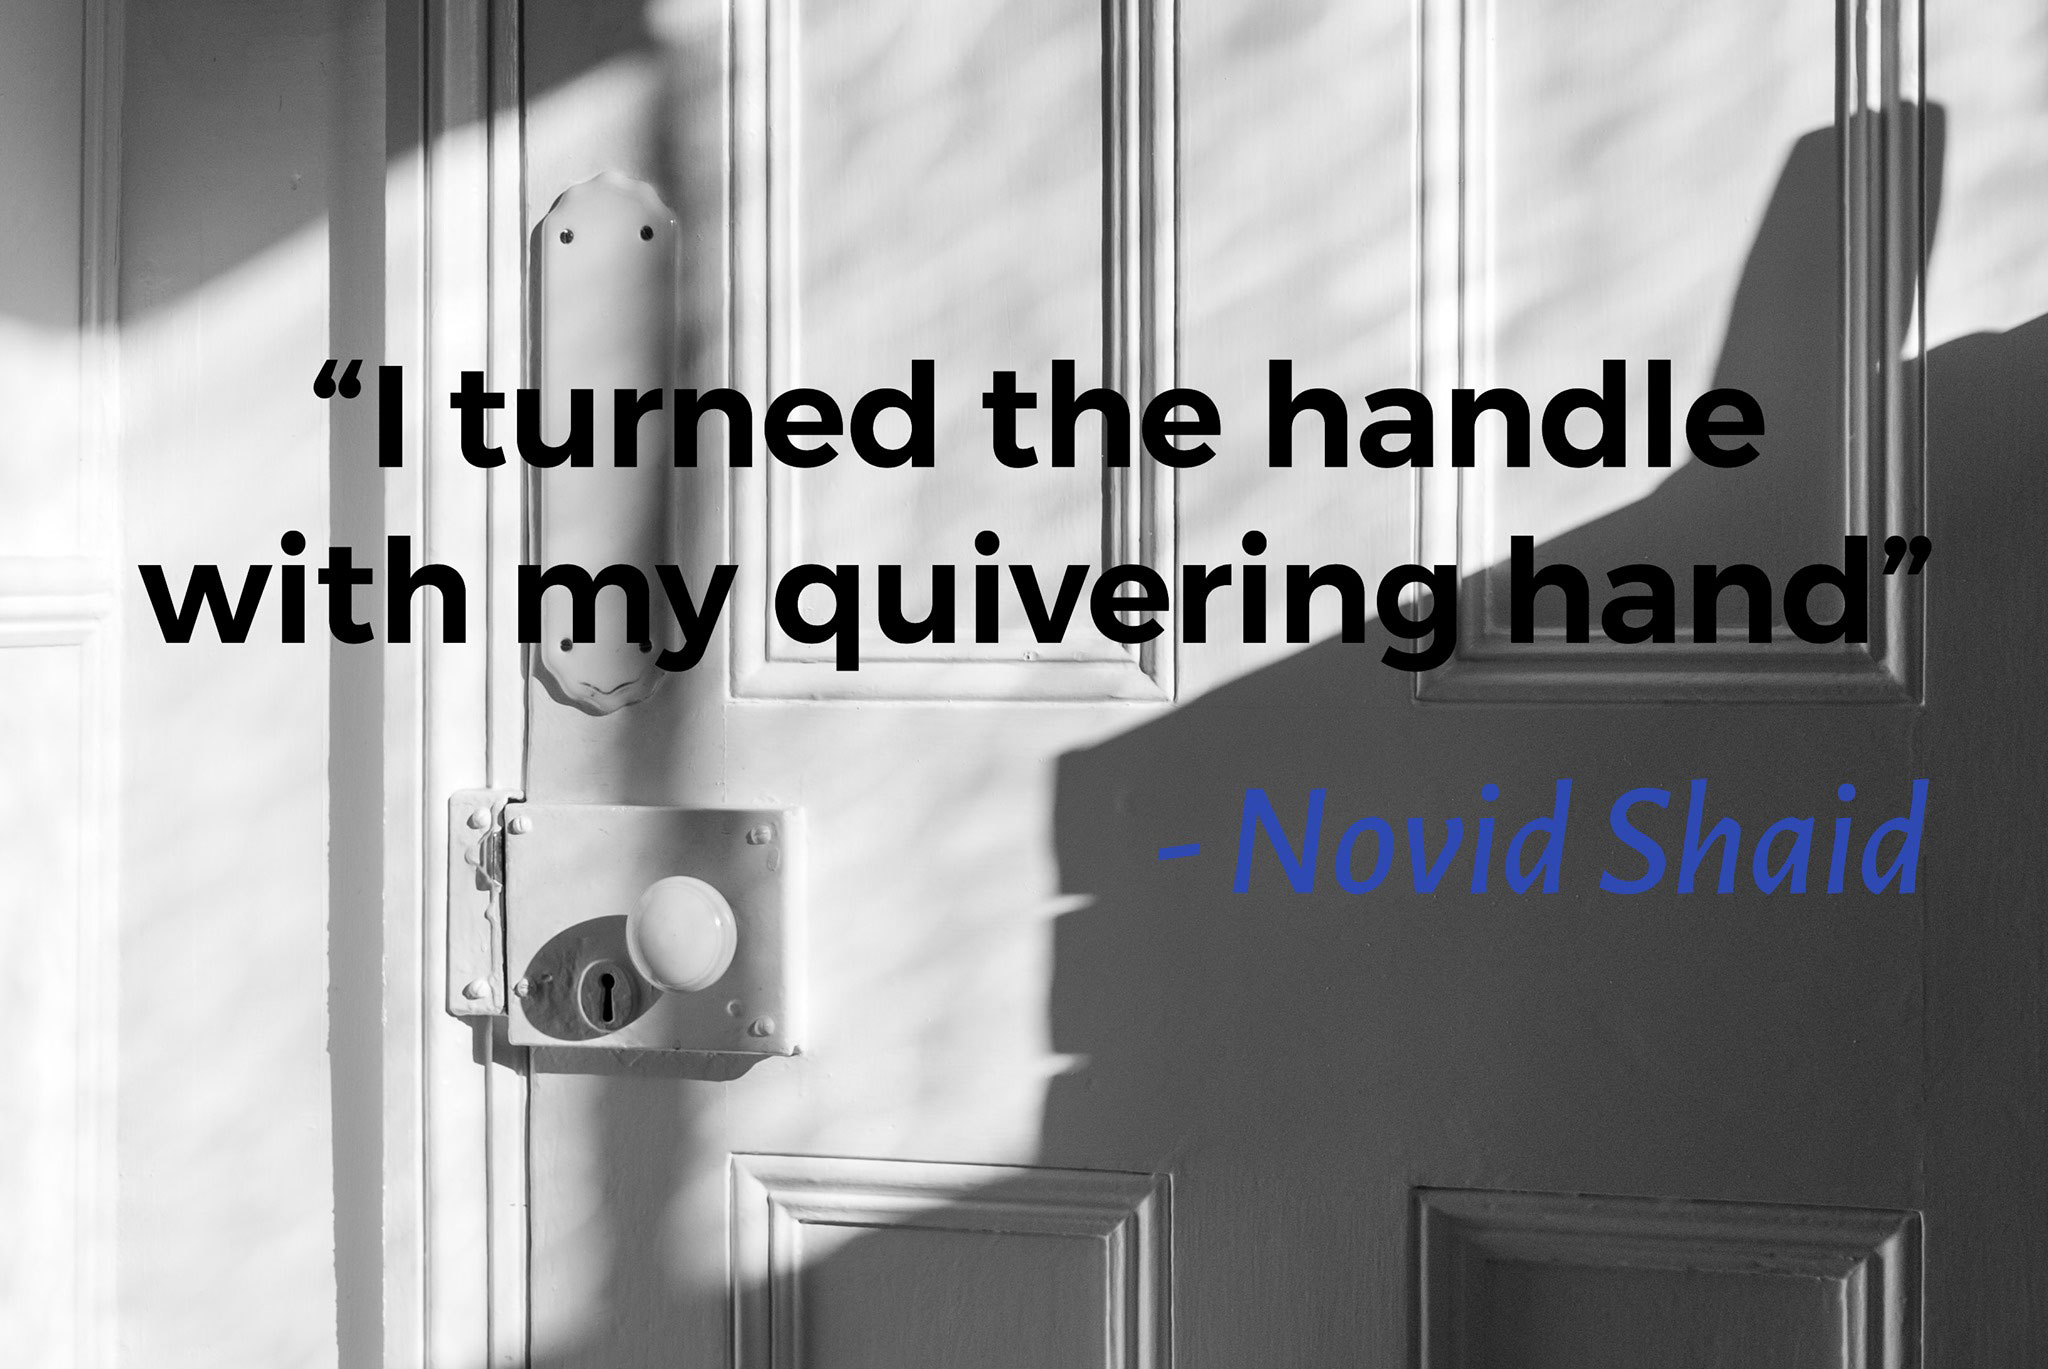 The Homecoming of my old friend – Novid Shaid